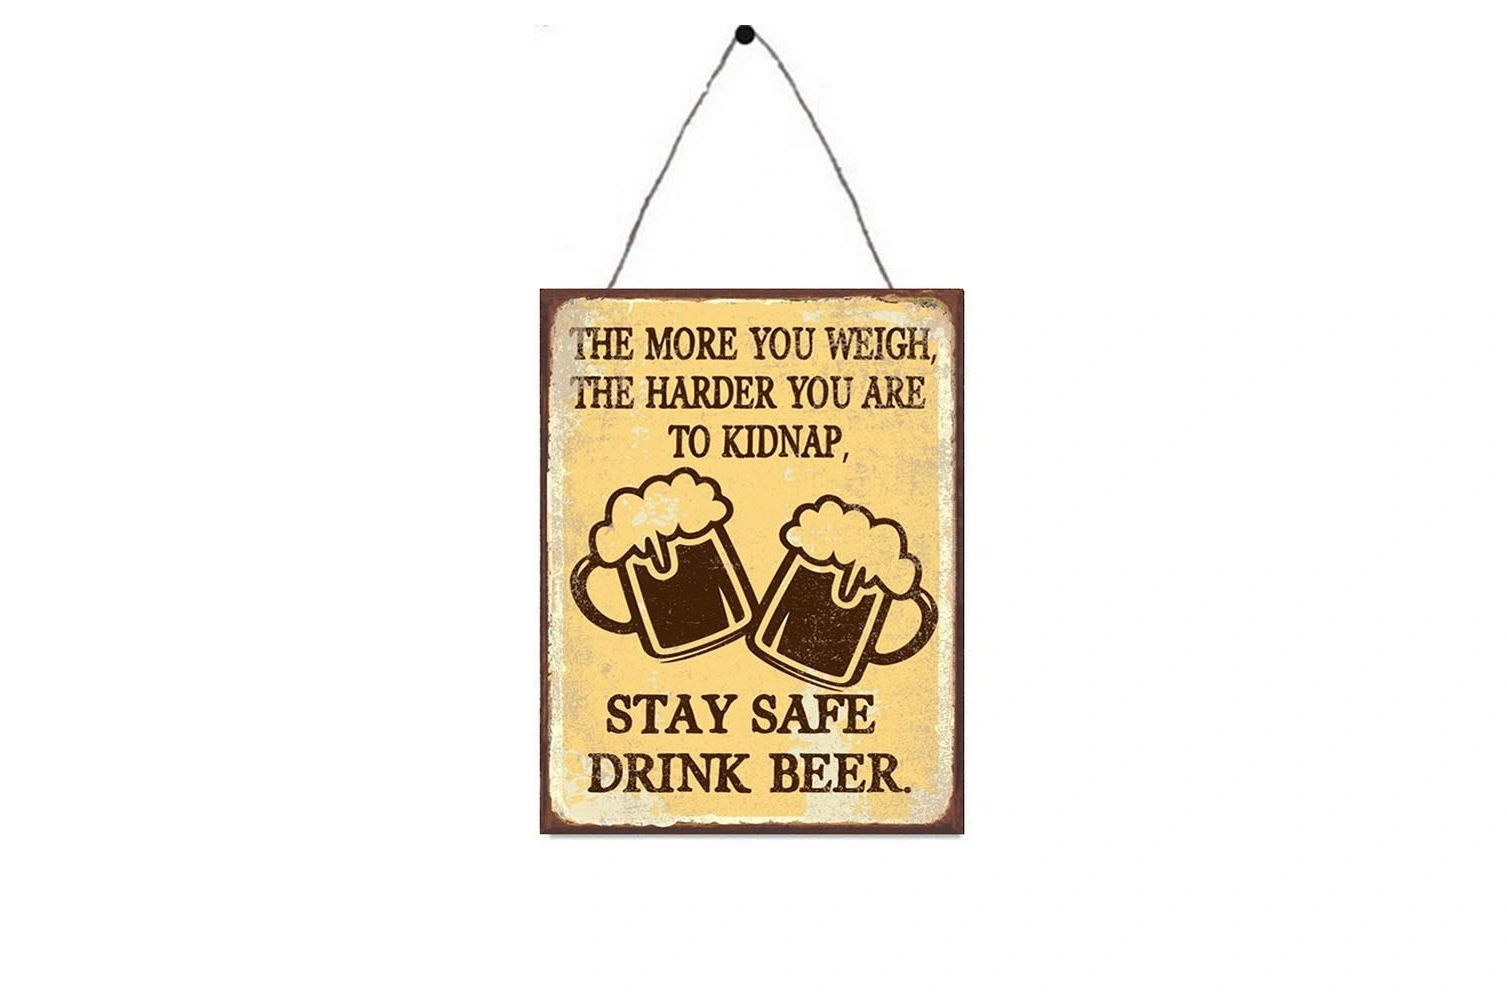 The more you weigh, the harder you are to kidnap, stay safe drink beer